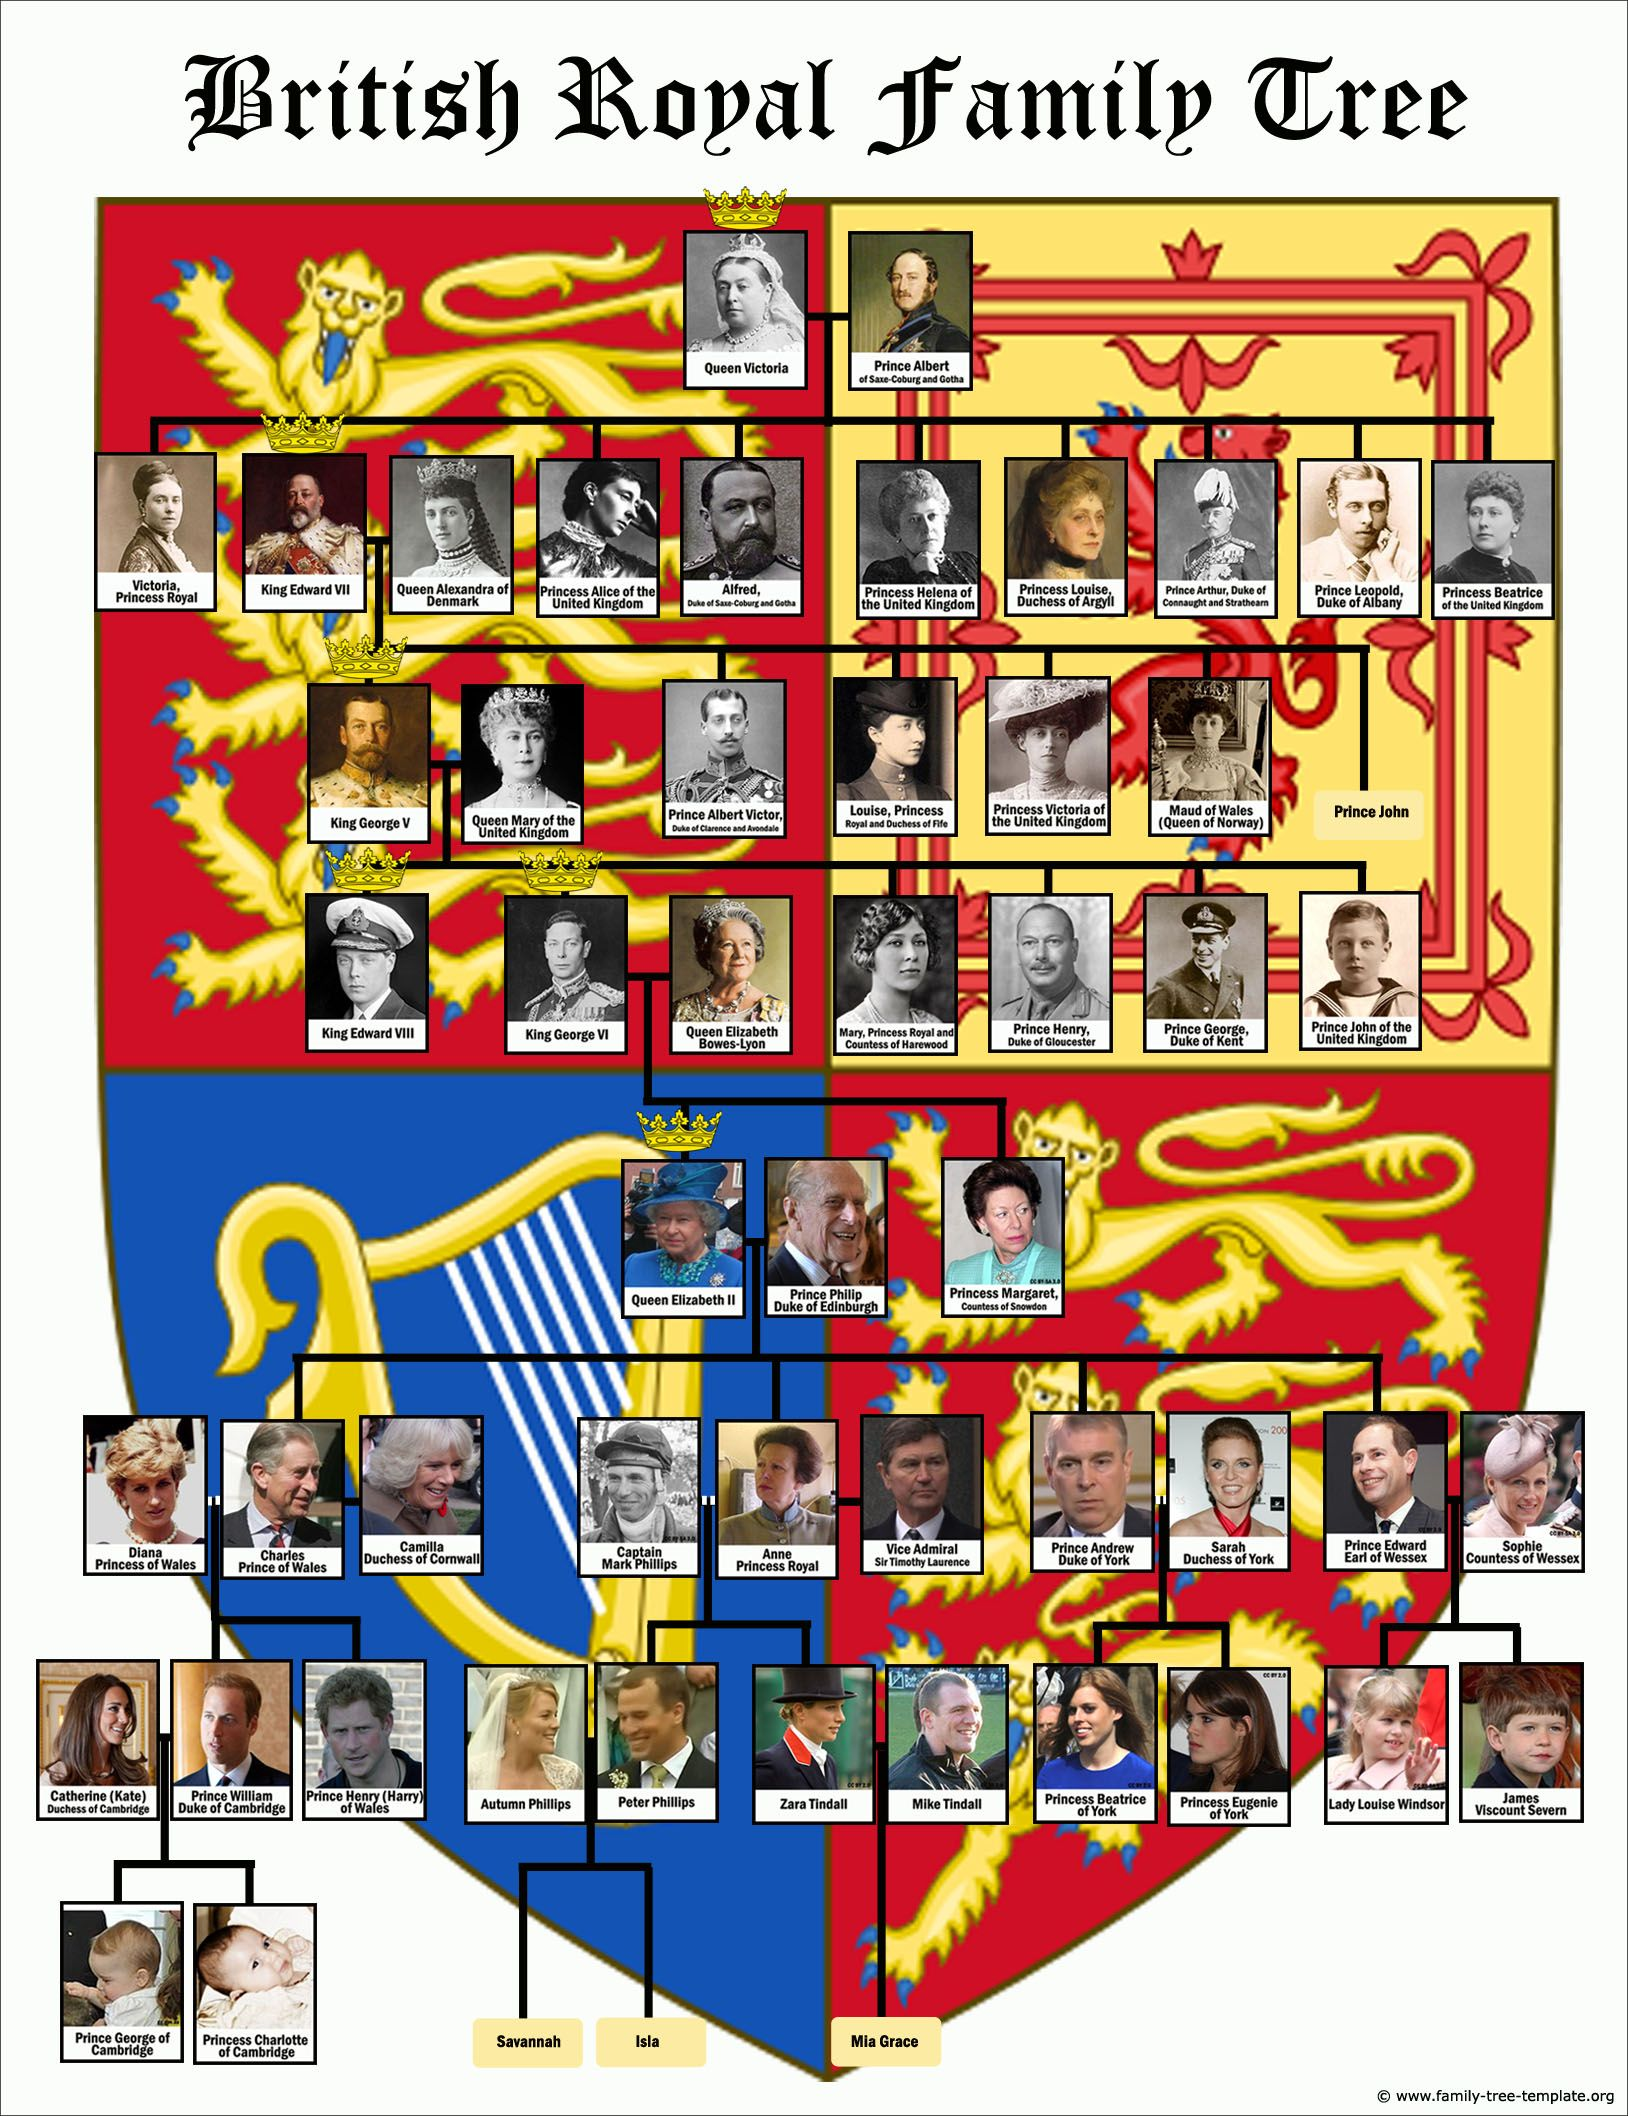 Decorative British Royal Family Tree Chart With 8 Generations Of Kings And Queens